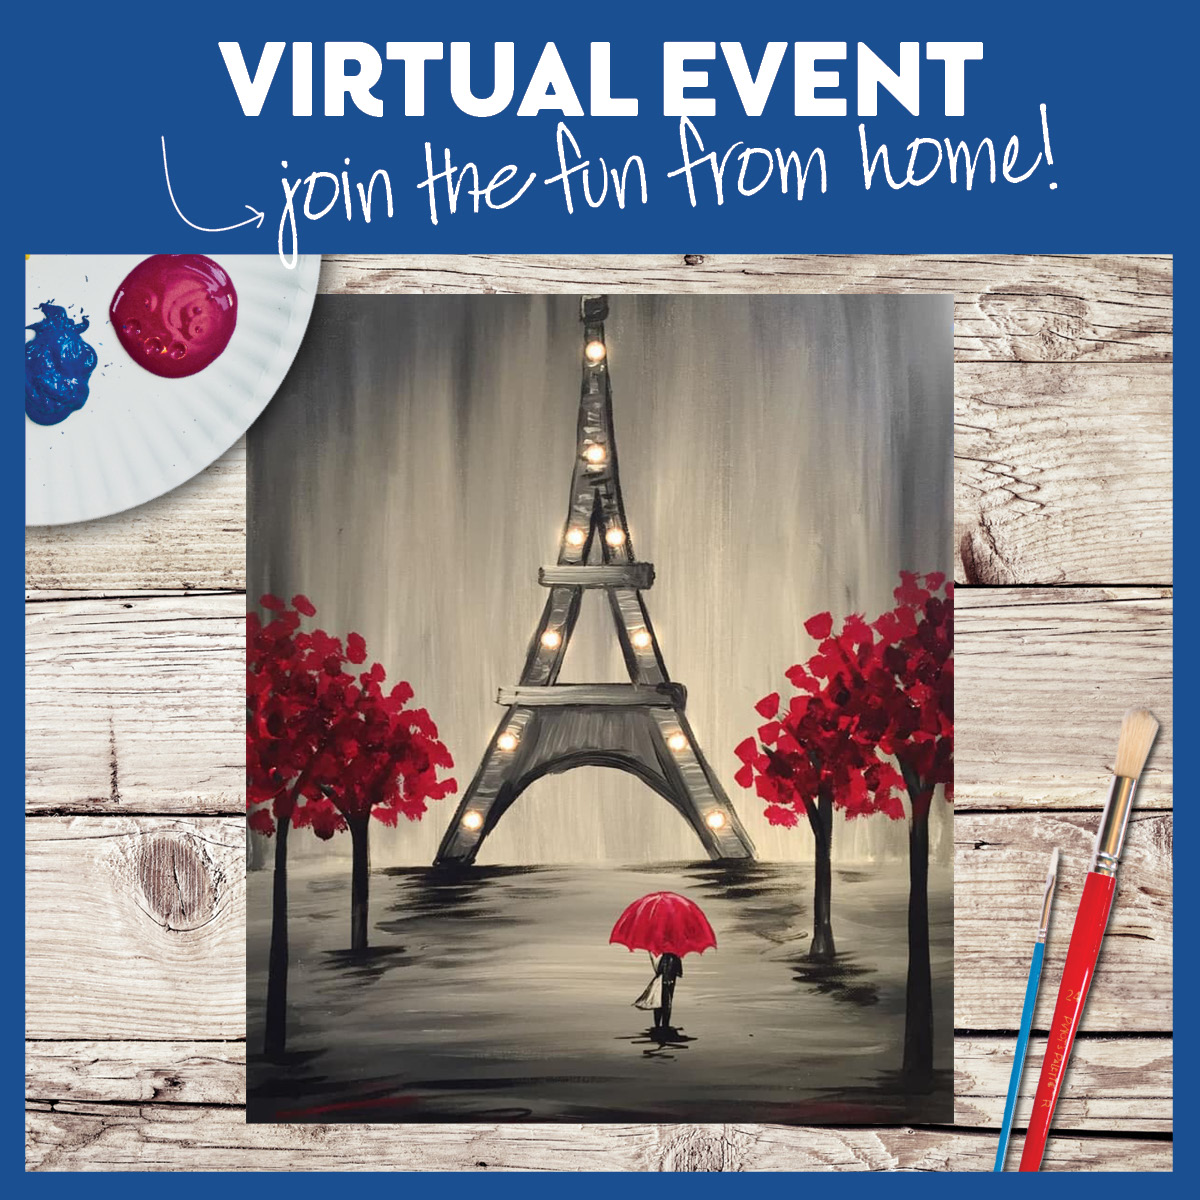 LIVE VIRTUAL EVENT! LIGHTS INCLUDED!